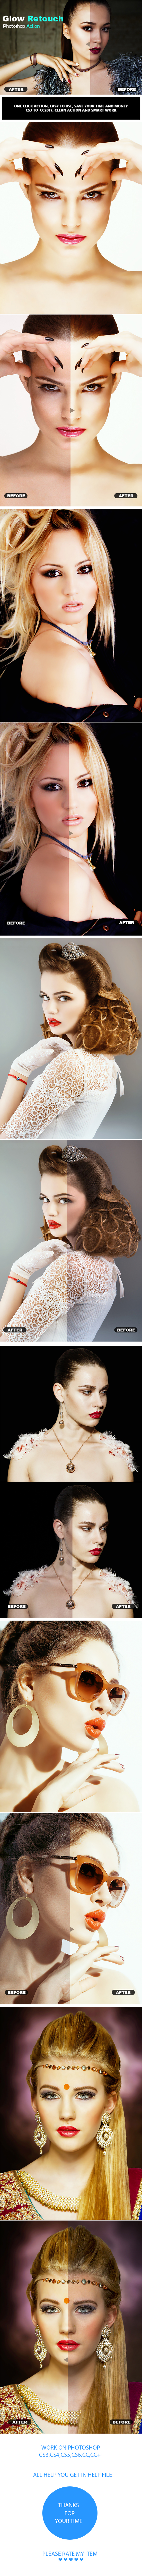 Glow Retouch Photoshop Action - Photo Effects Actions